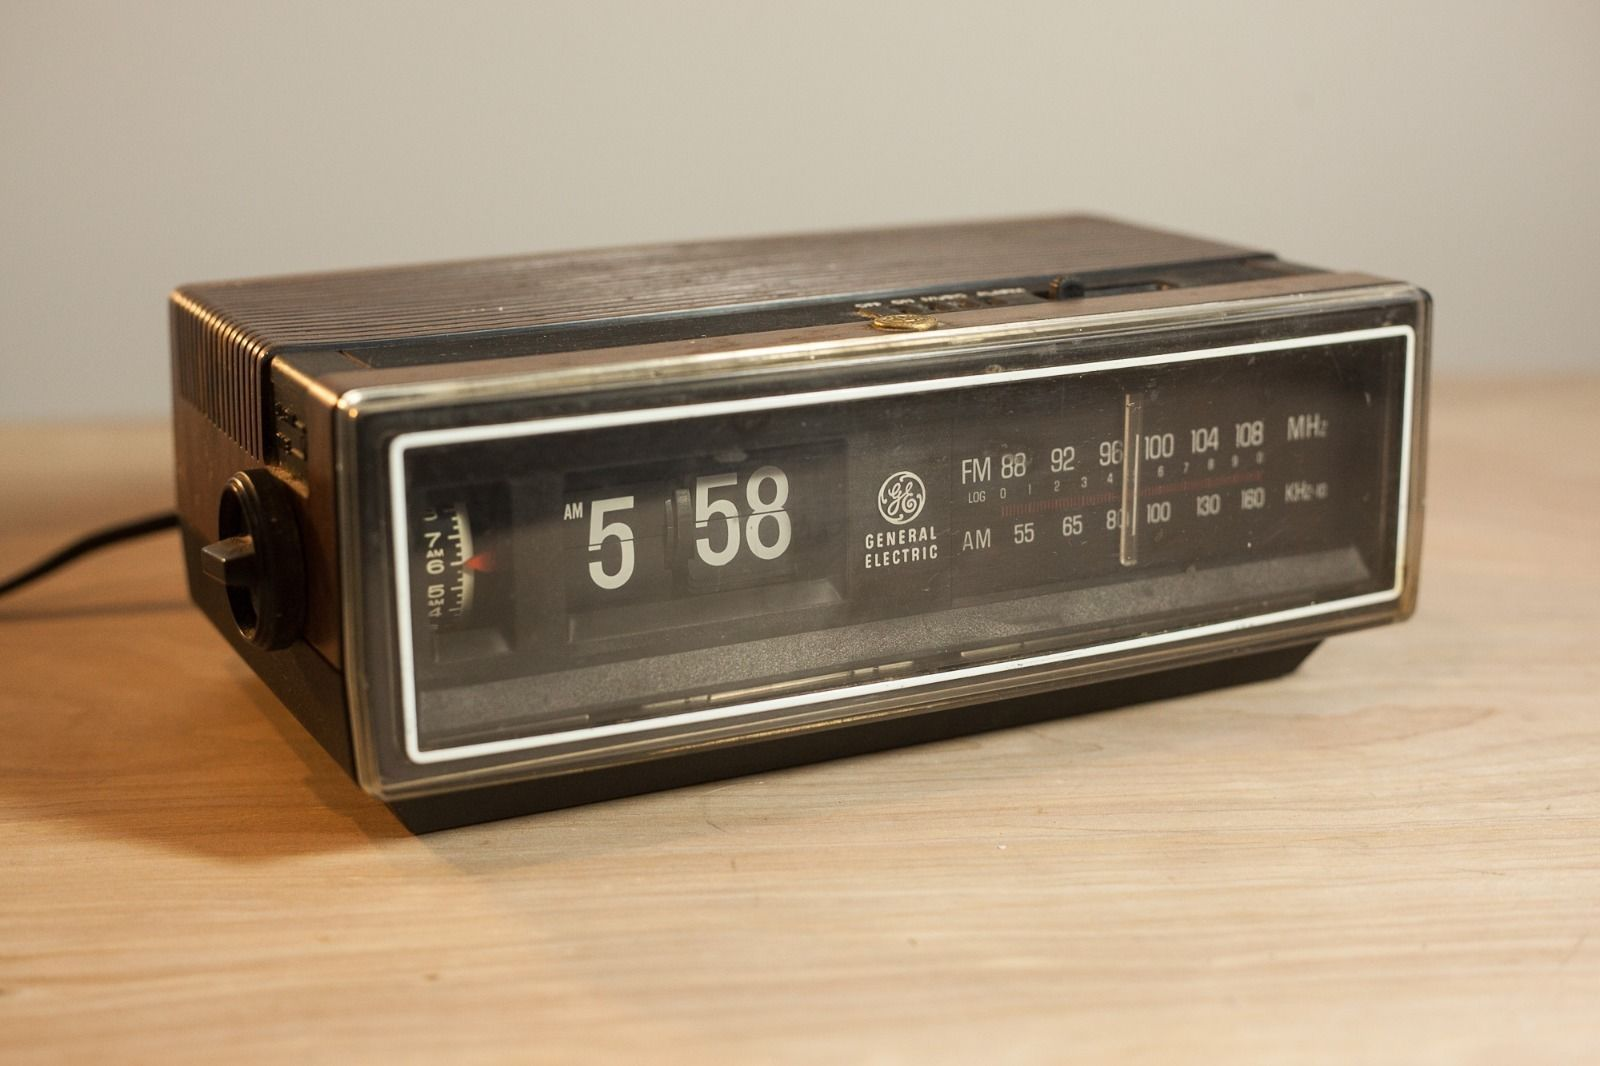 Vintage General Electric Flip Number Radio Alarm Clock